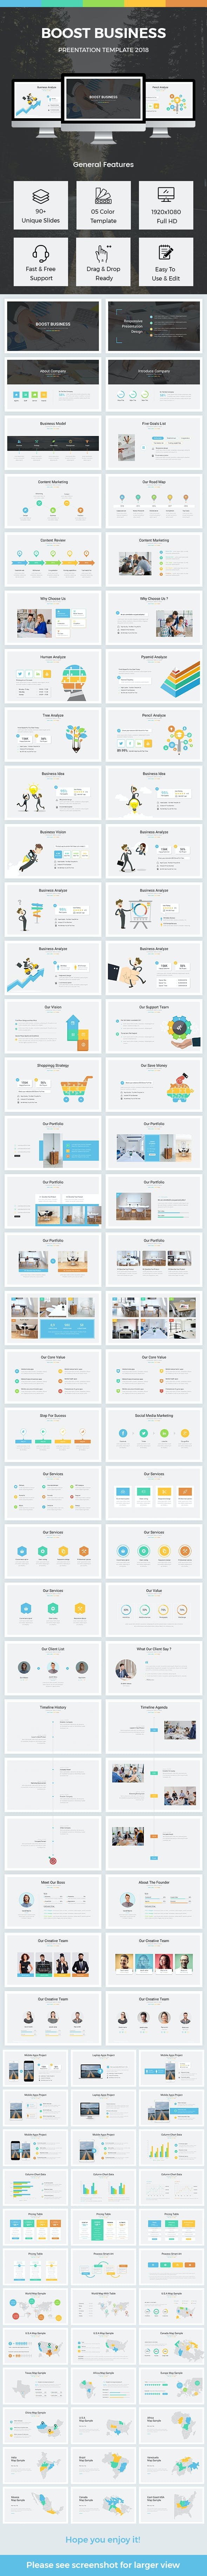 boost business powerpoint template 2018 by light slides graphicriver